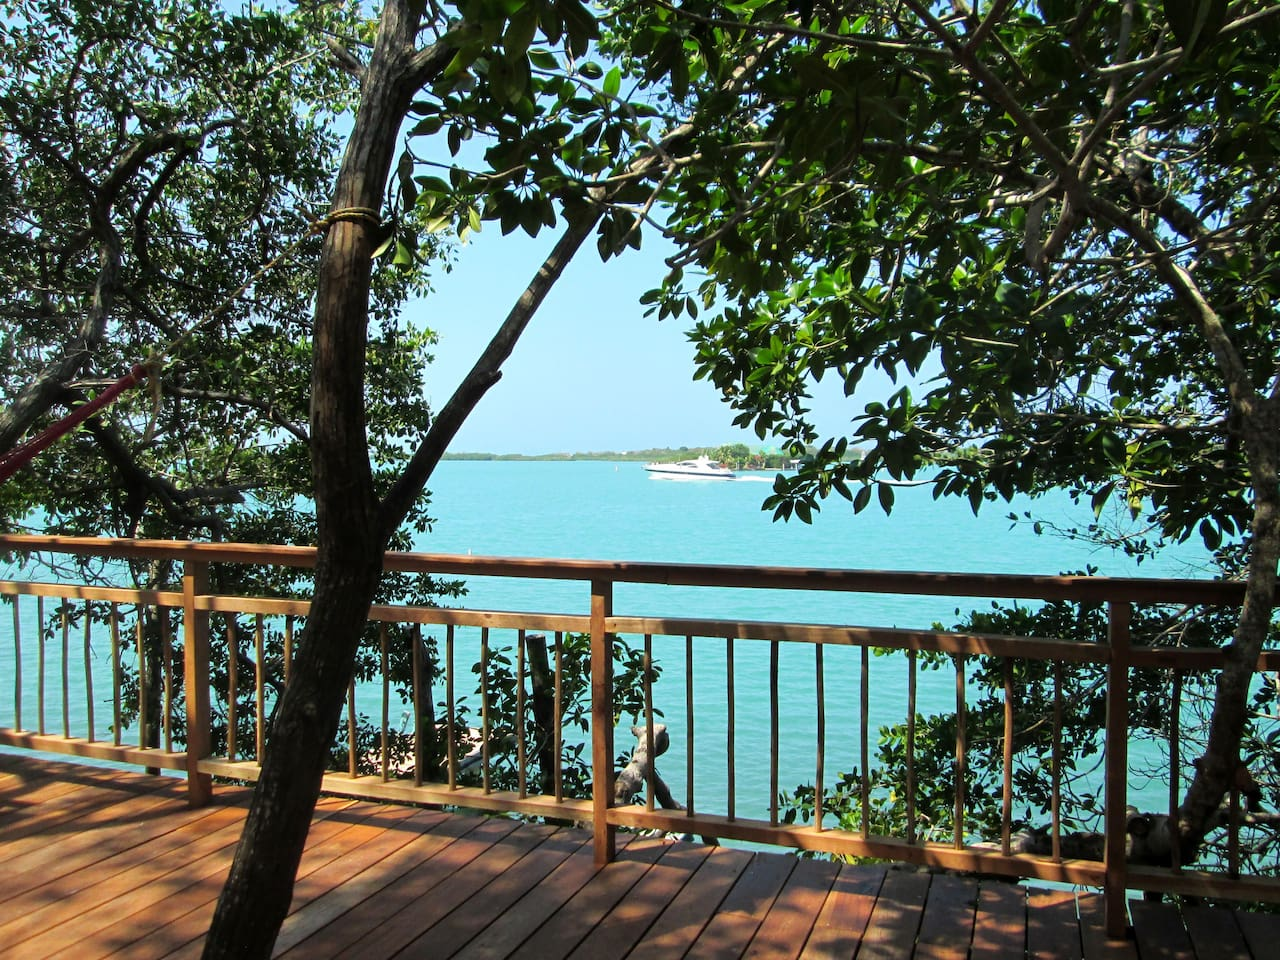 Cholon's Bay view from deck